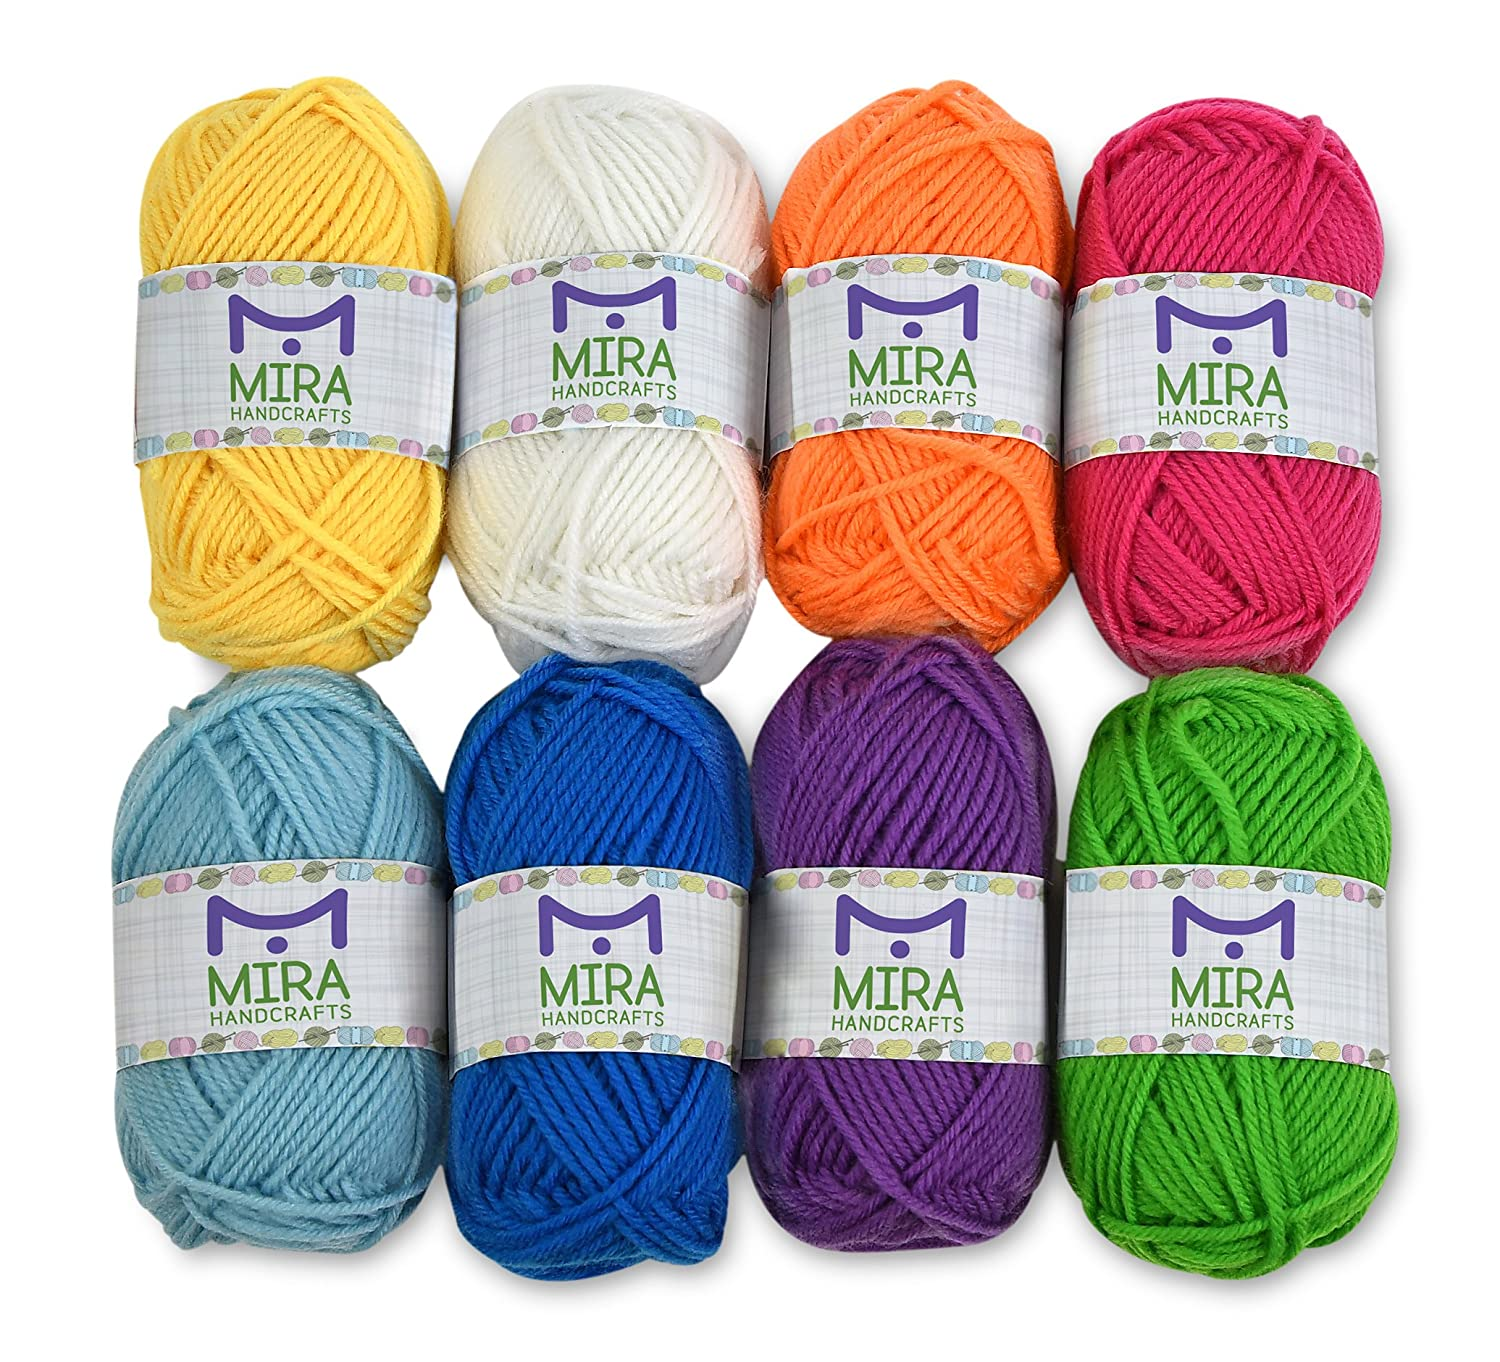 Premium Yarn Pack - 8 Acrylic Rainbow Color Yarn Skeins - Excellent for Small and Kids Yarn Projects, Crafts, Knitting, Crochet and Much More - 10 Gifts with Each Pack - Resealable Bag MiraGoods BCAC24392